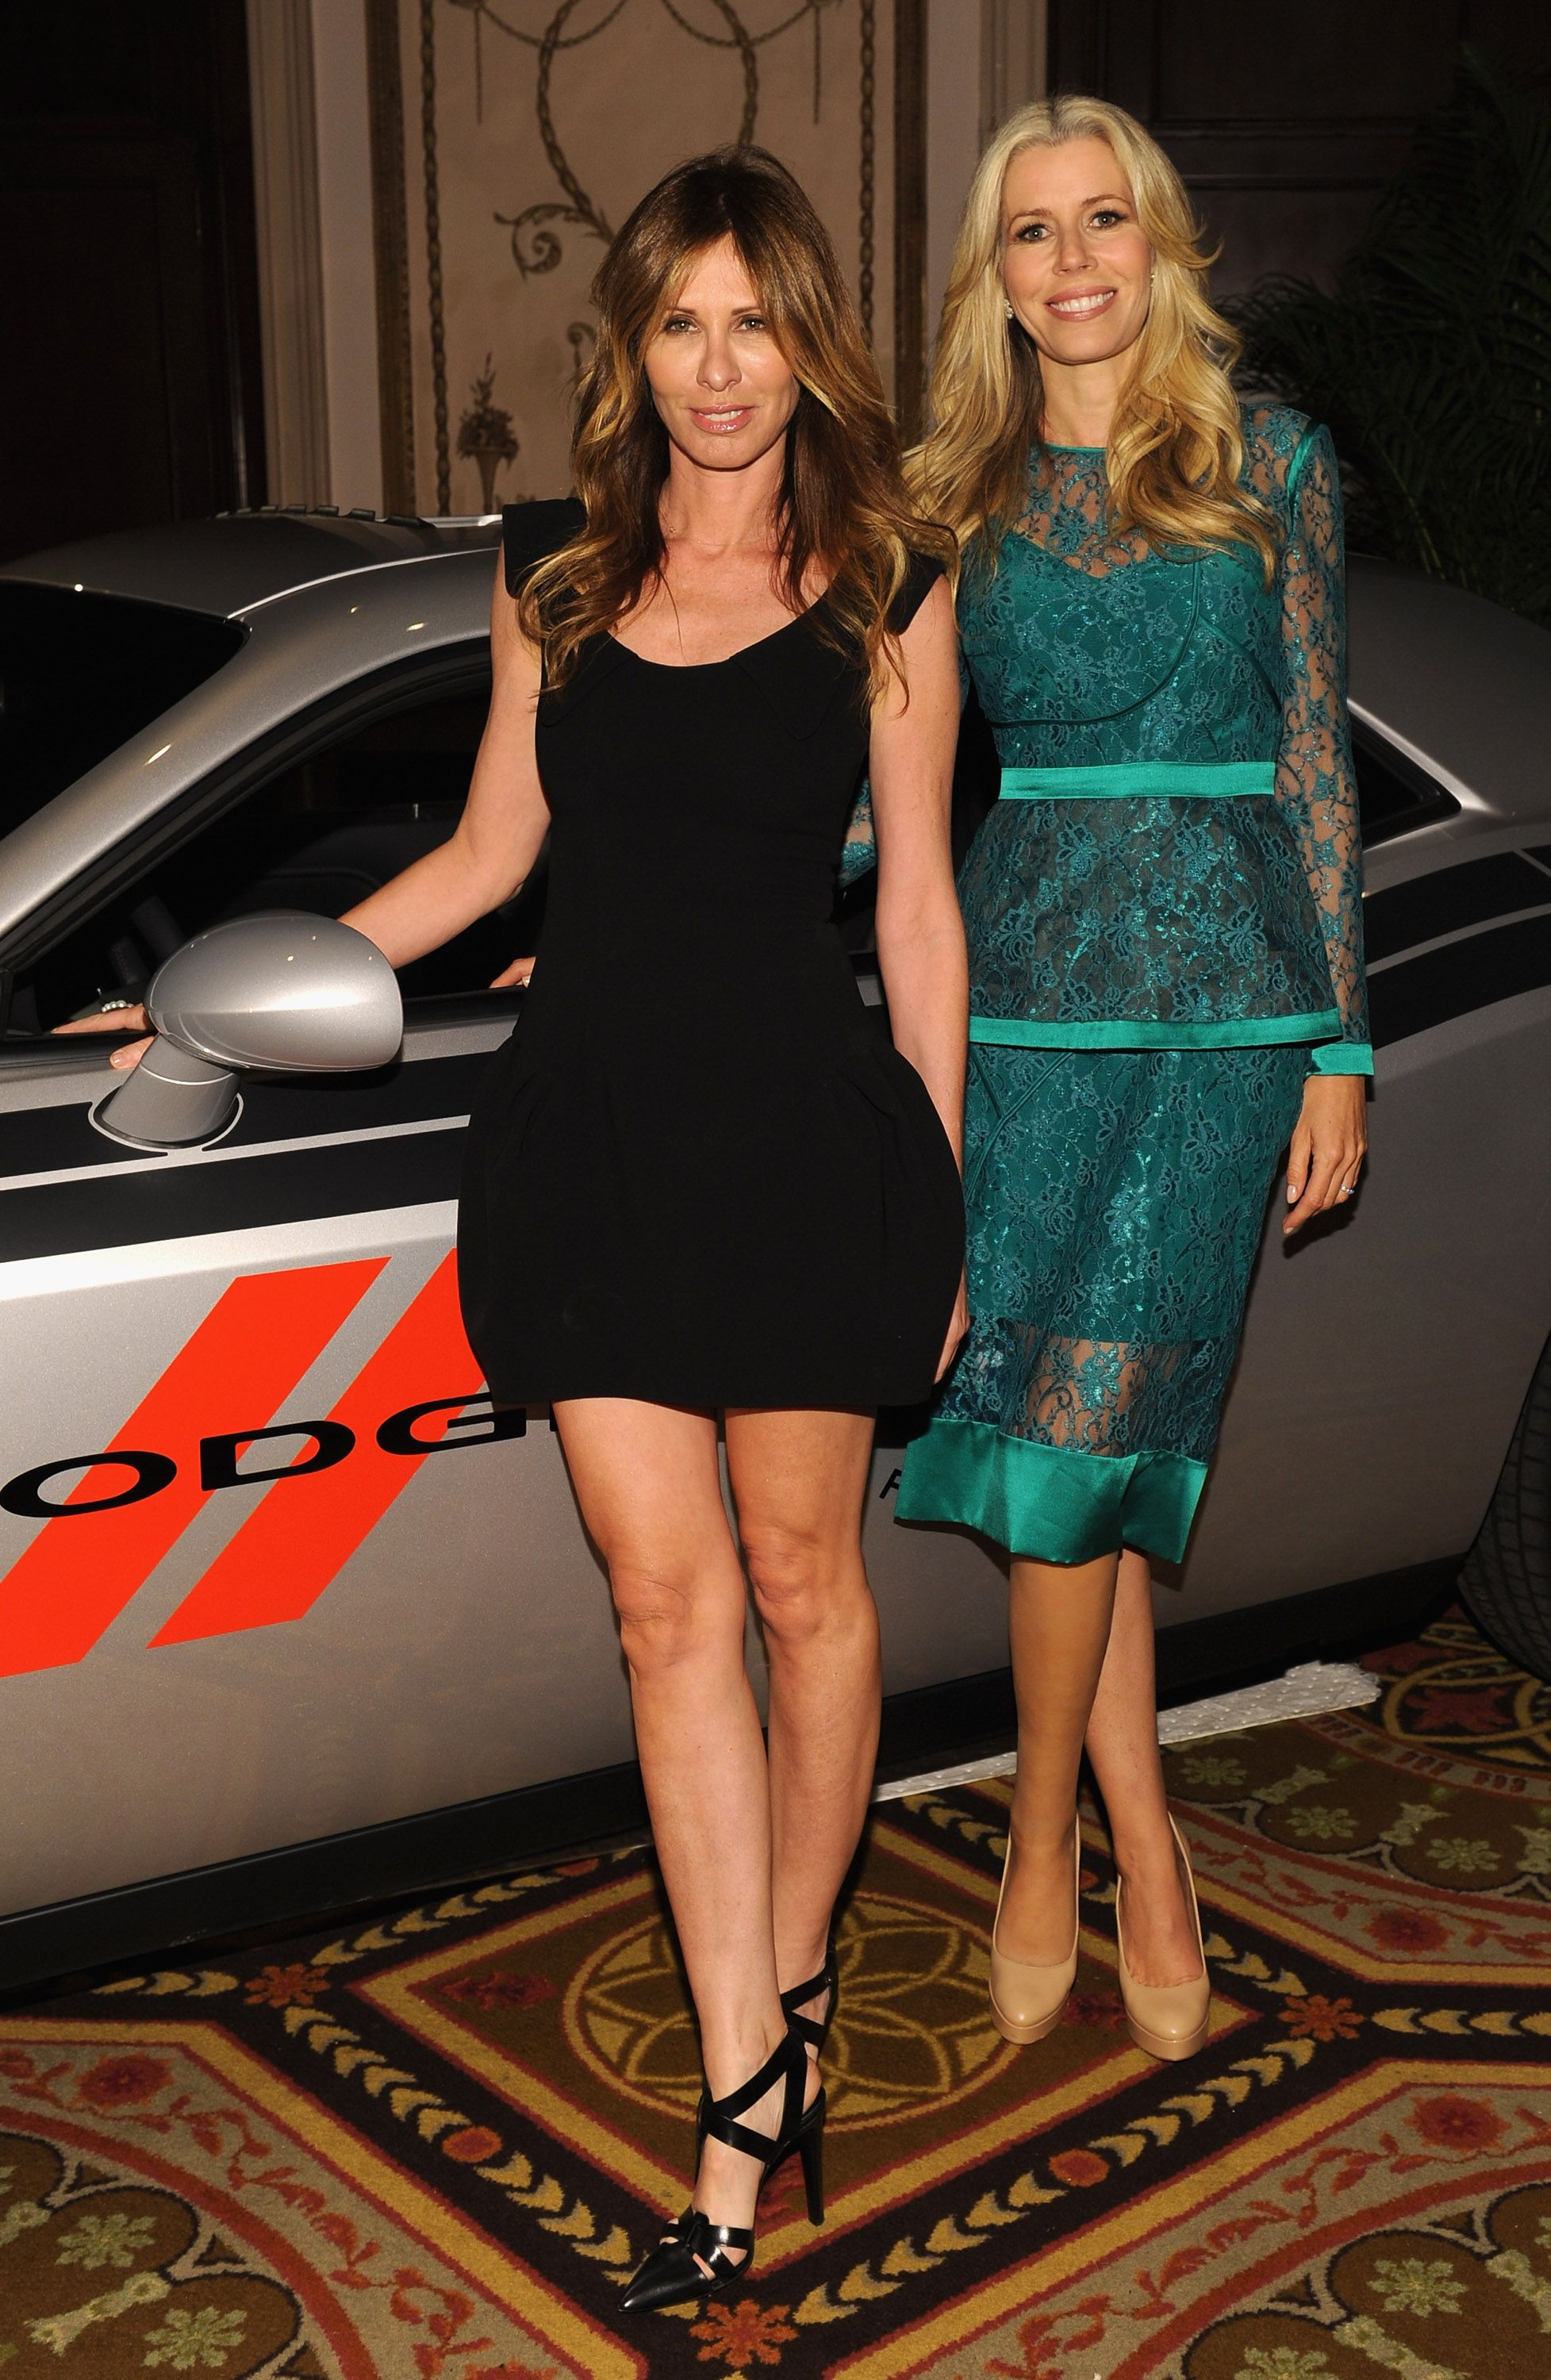 """Carole Radziwill and Aviva Drescher were close during their initial days on """"The Real Housewives of New York."""""""